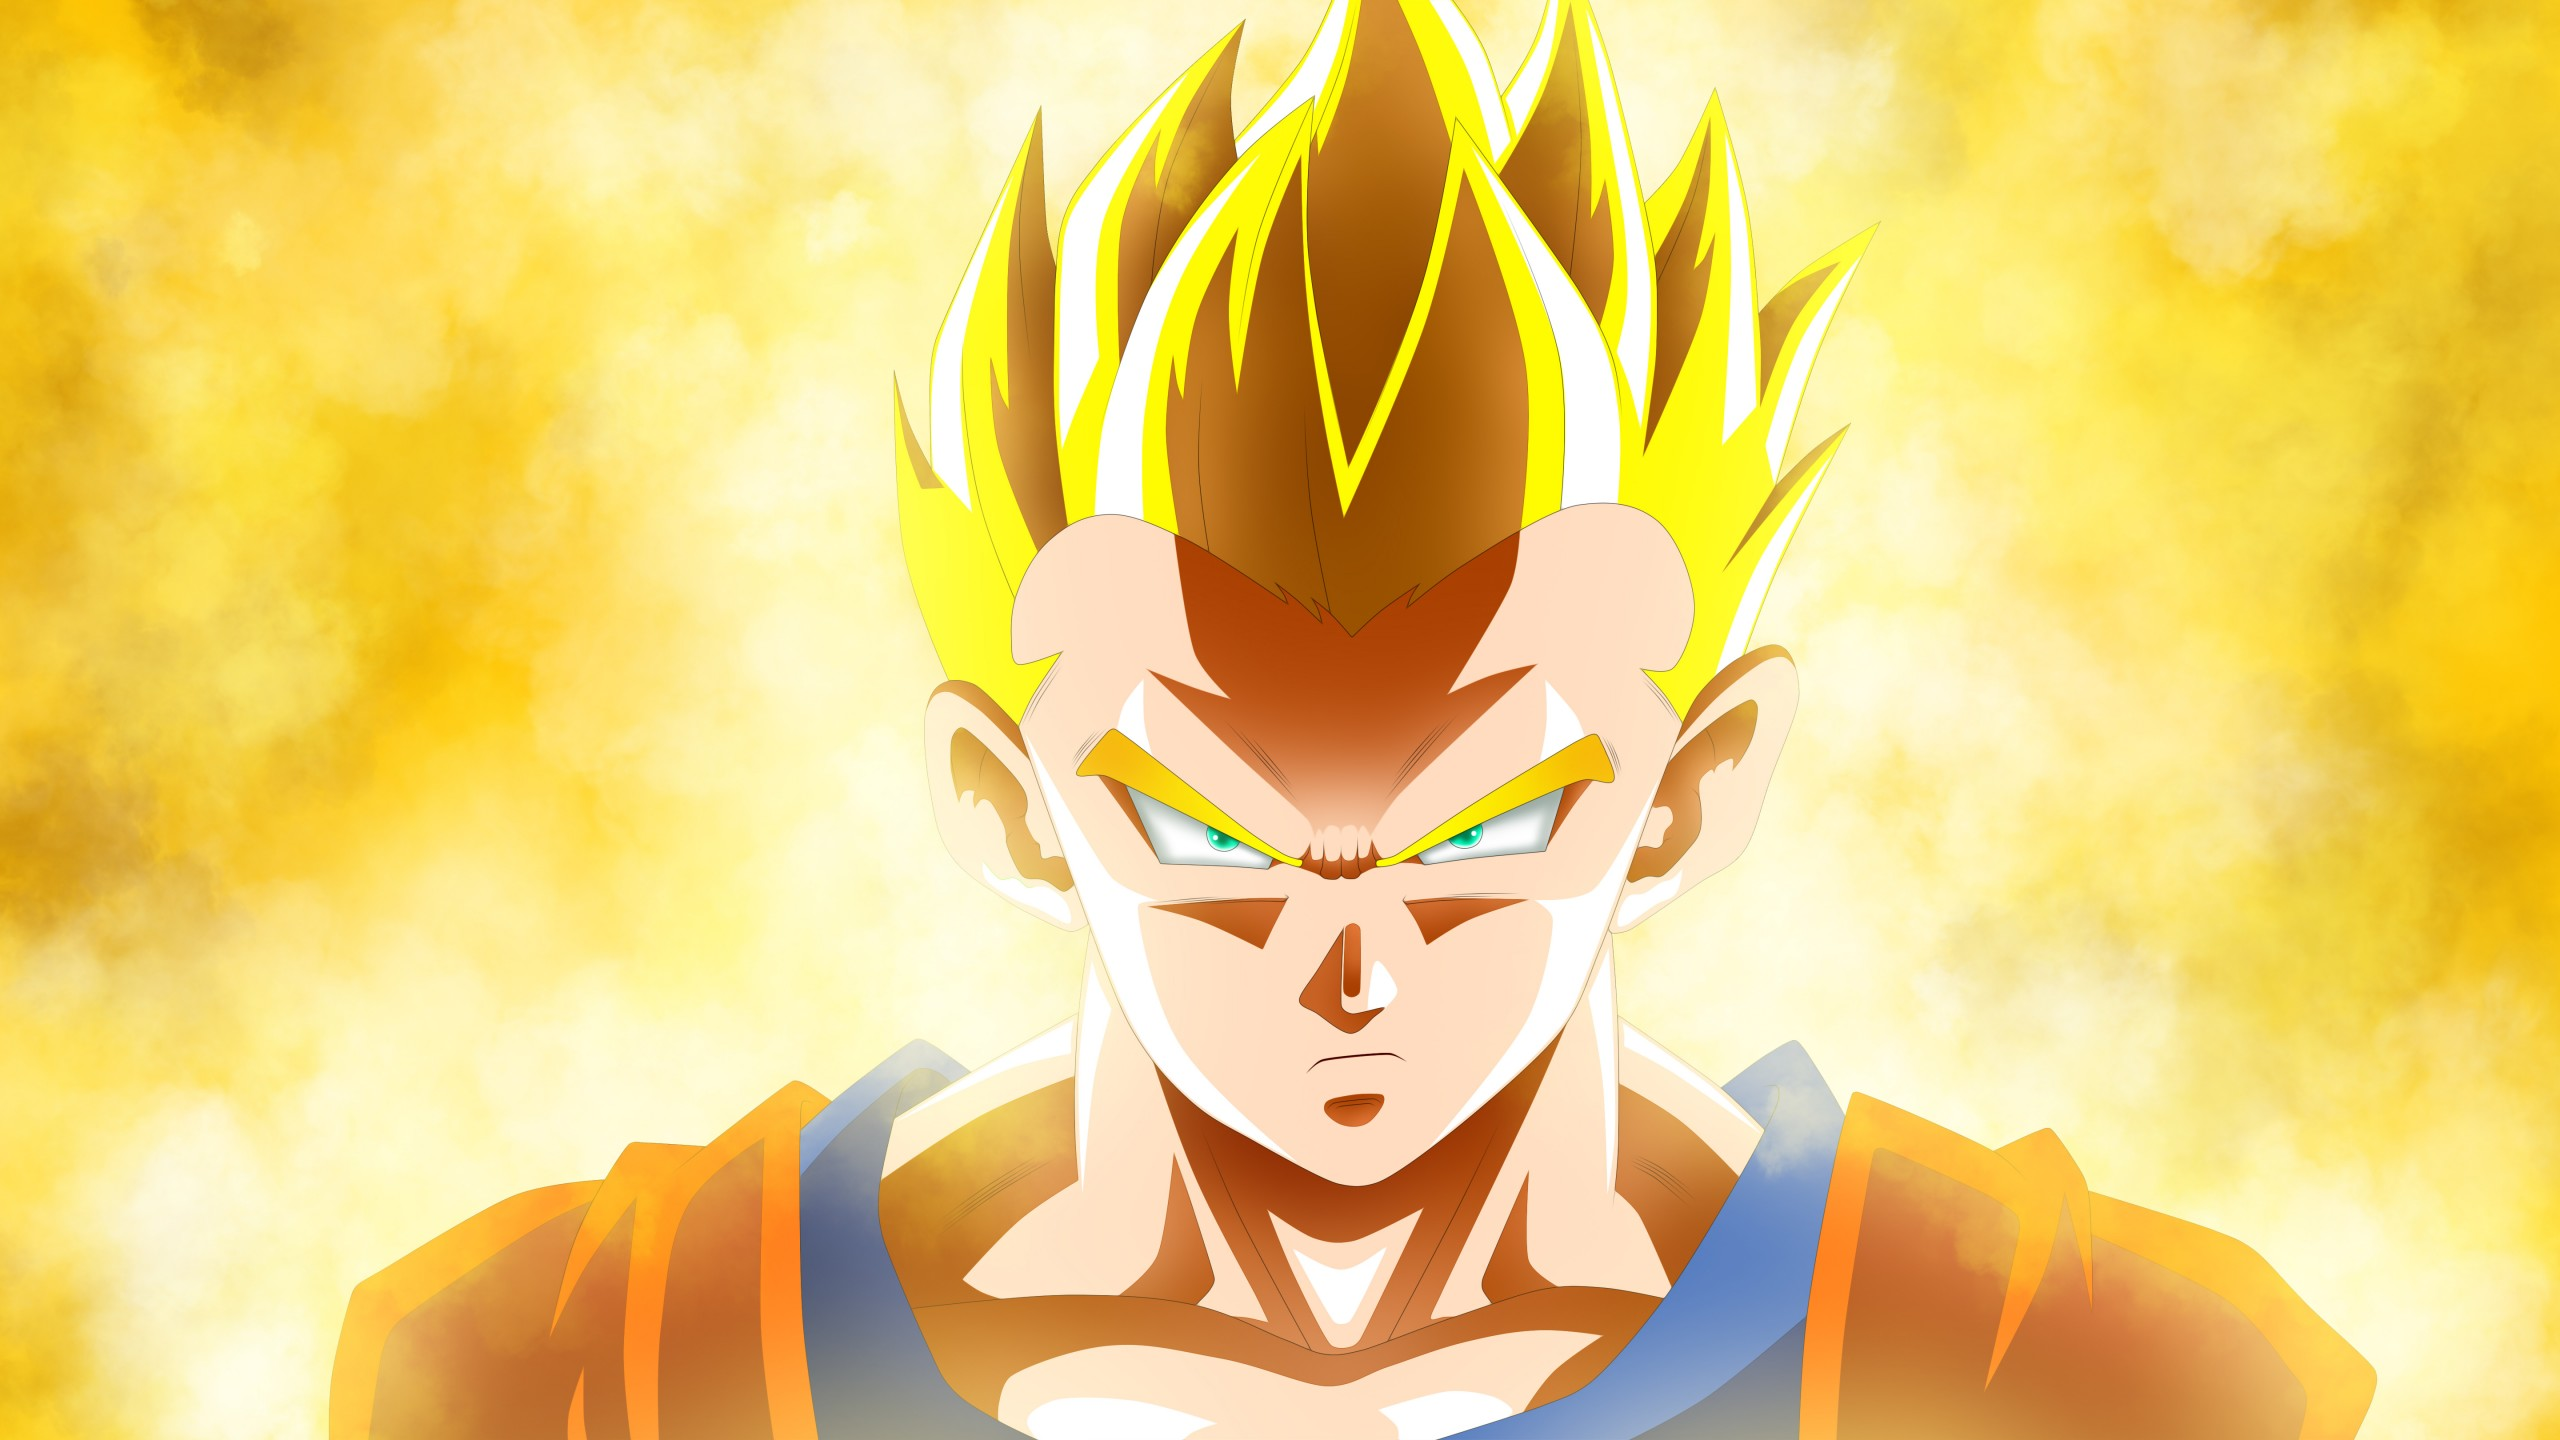 Son Goku Dragon Ball Super 5K Wallpapers